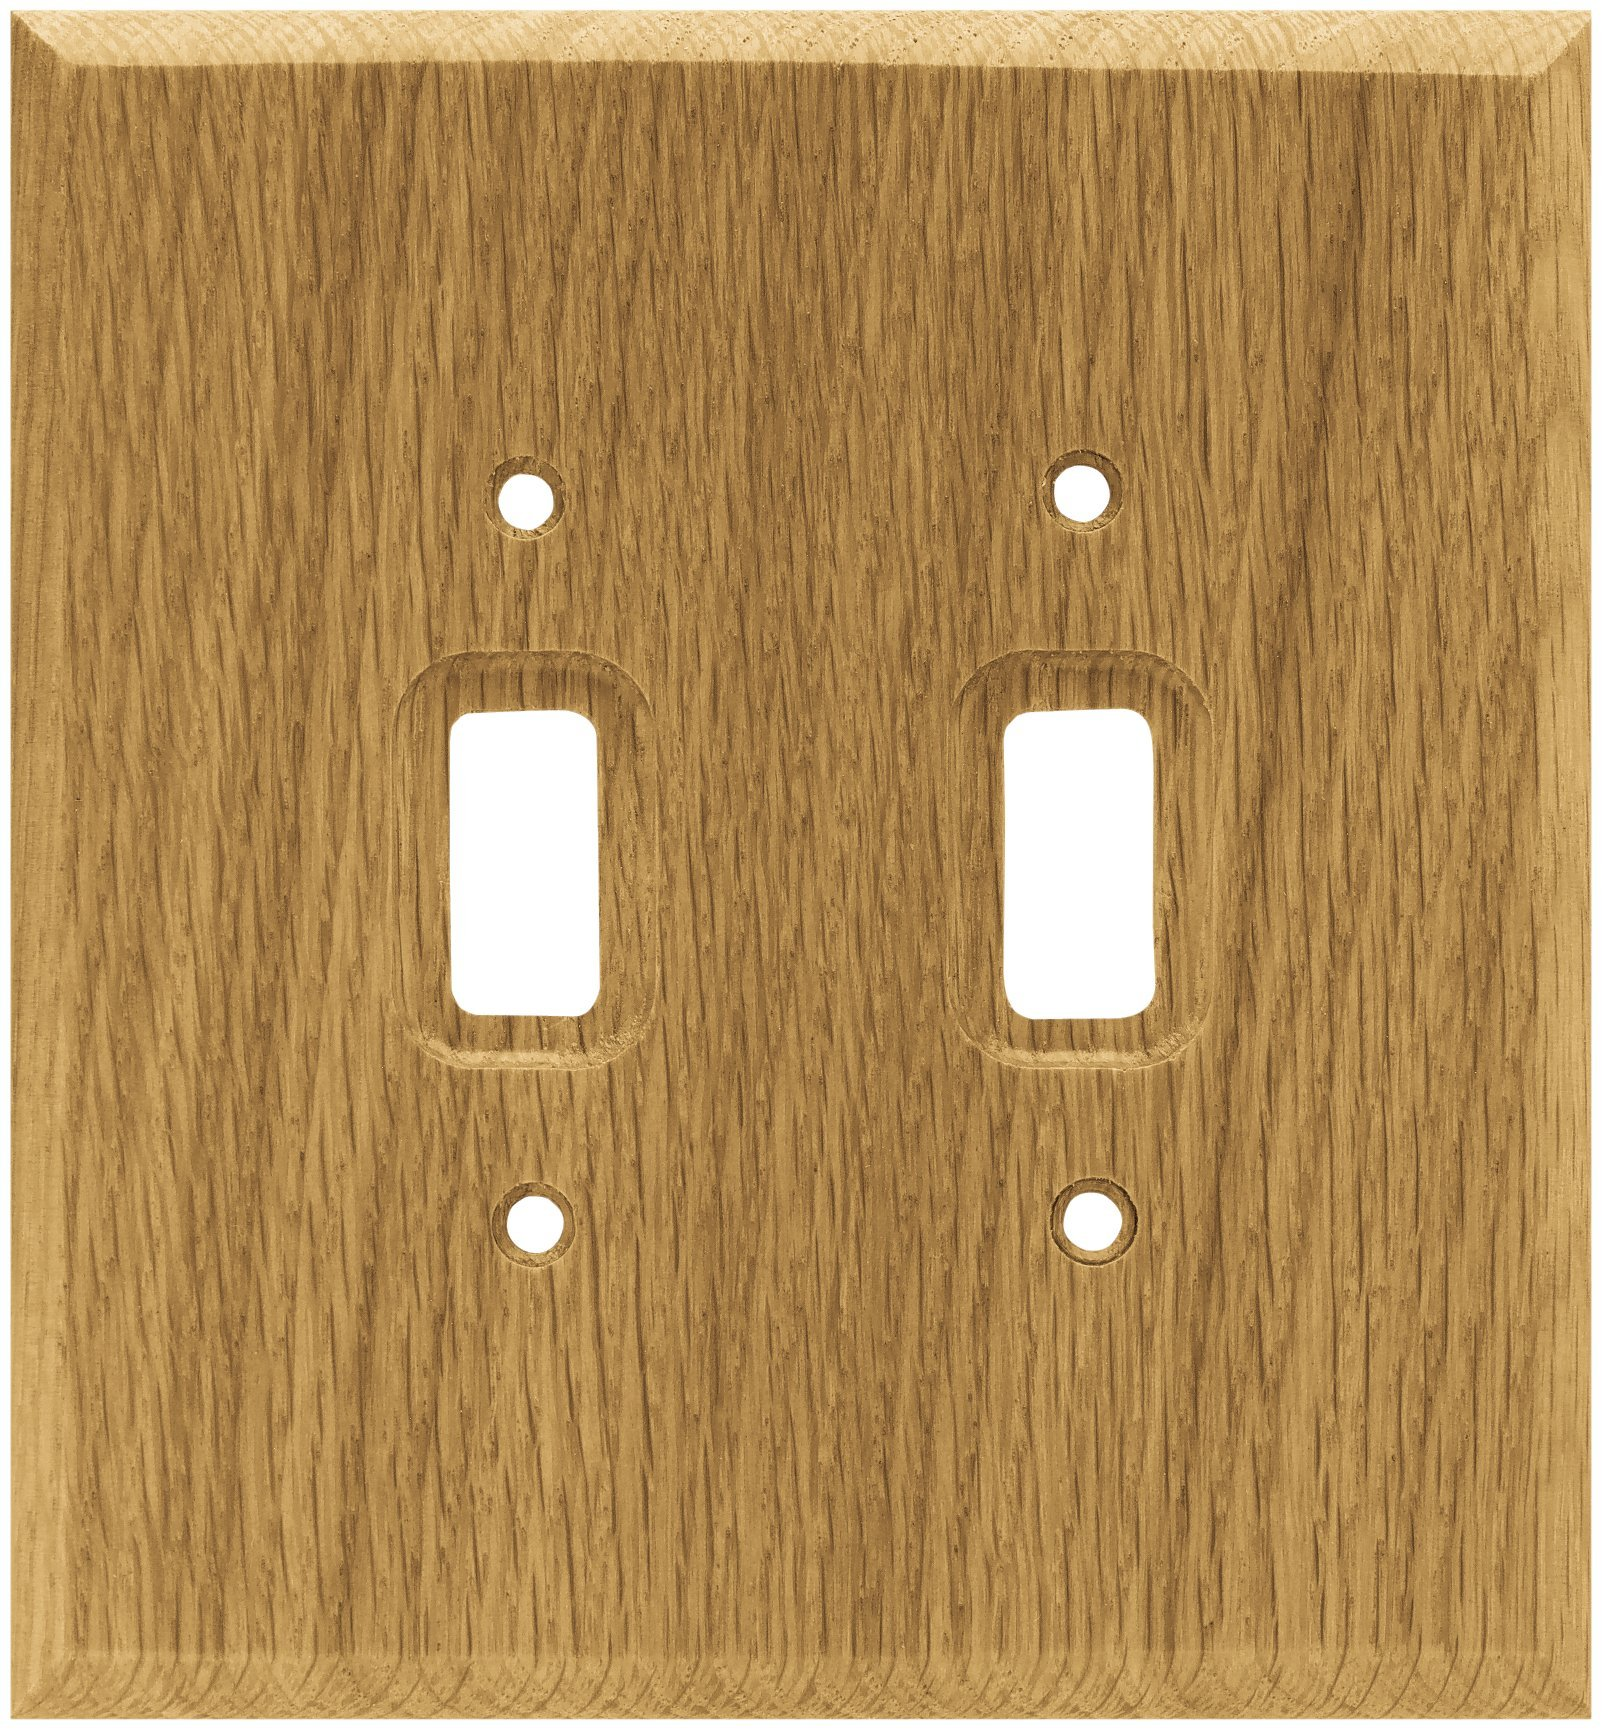 Brainerd 64658 Wood Square Double Switch Wall Plate / Switch Plate / Cover, Medium Oak